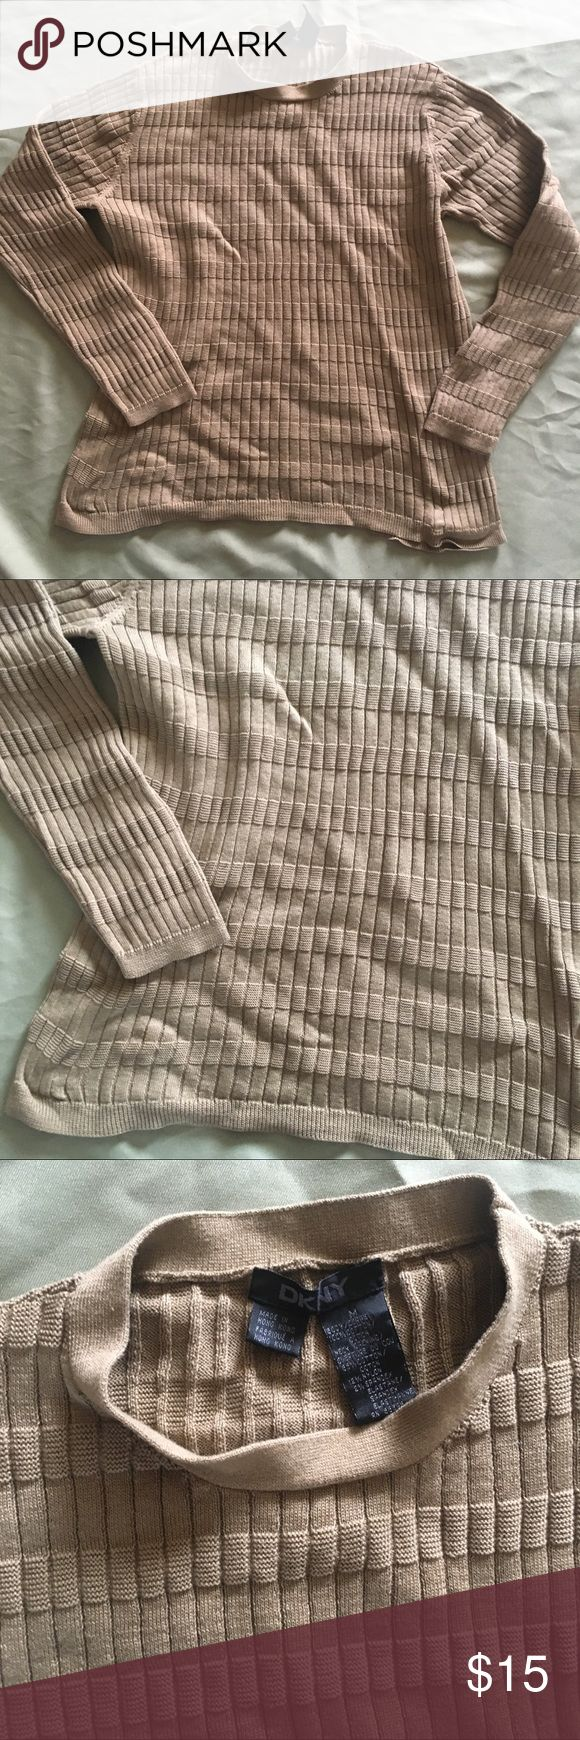 DKNY Men's Fitted Sweater Medium Tan Preppy Casual Size medium. In overall good condition with minimal pilling from normal wash wear. Price firm unless bundled! Dkny Sweaters Crewneck